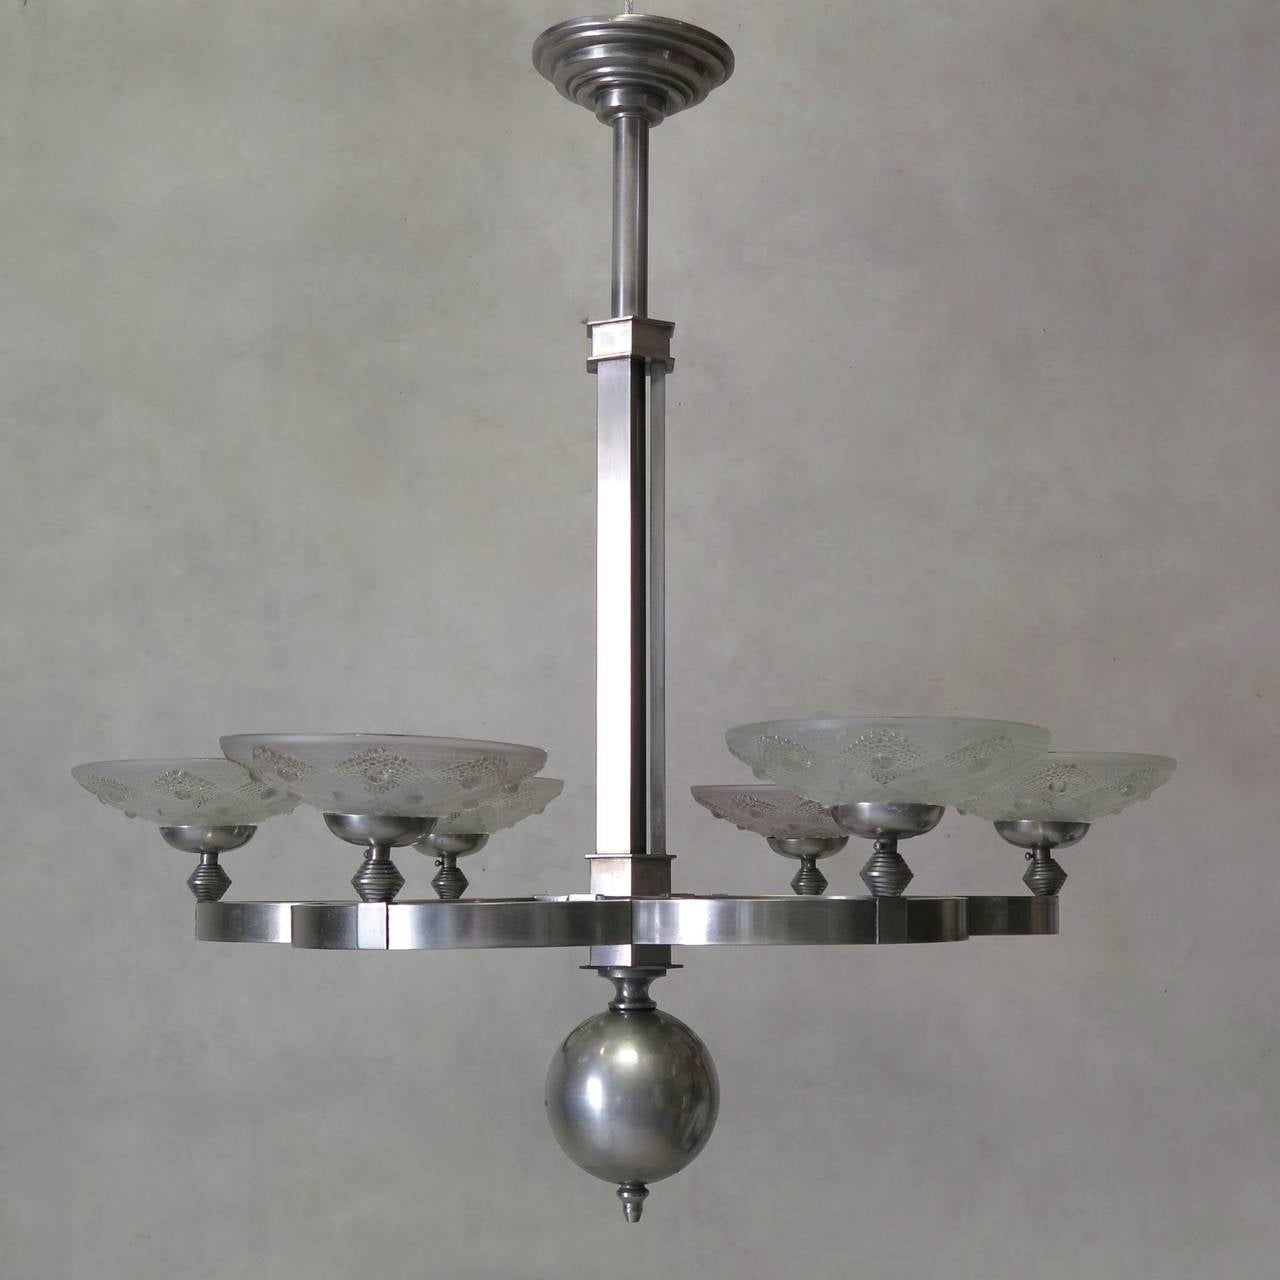 Chic and unusual large, six-light Art Deco chandelier in chromed metal with frosted glass shades, ending in a large finial. Beautiful quality.